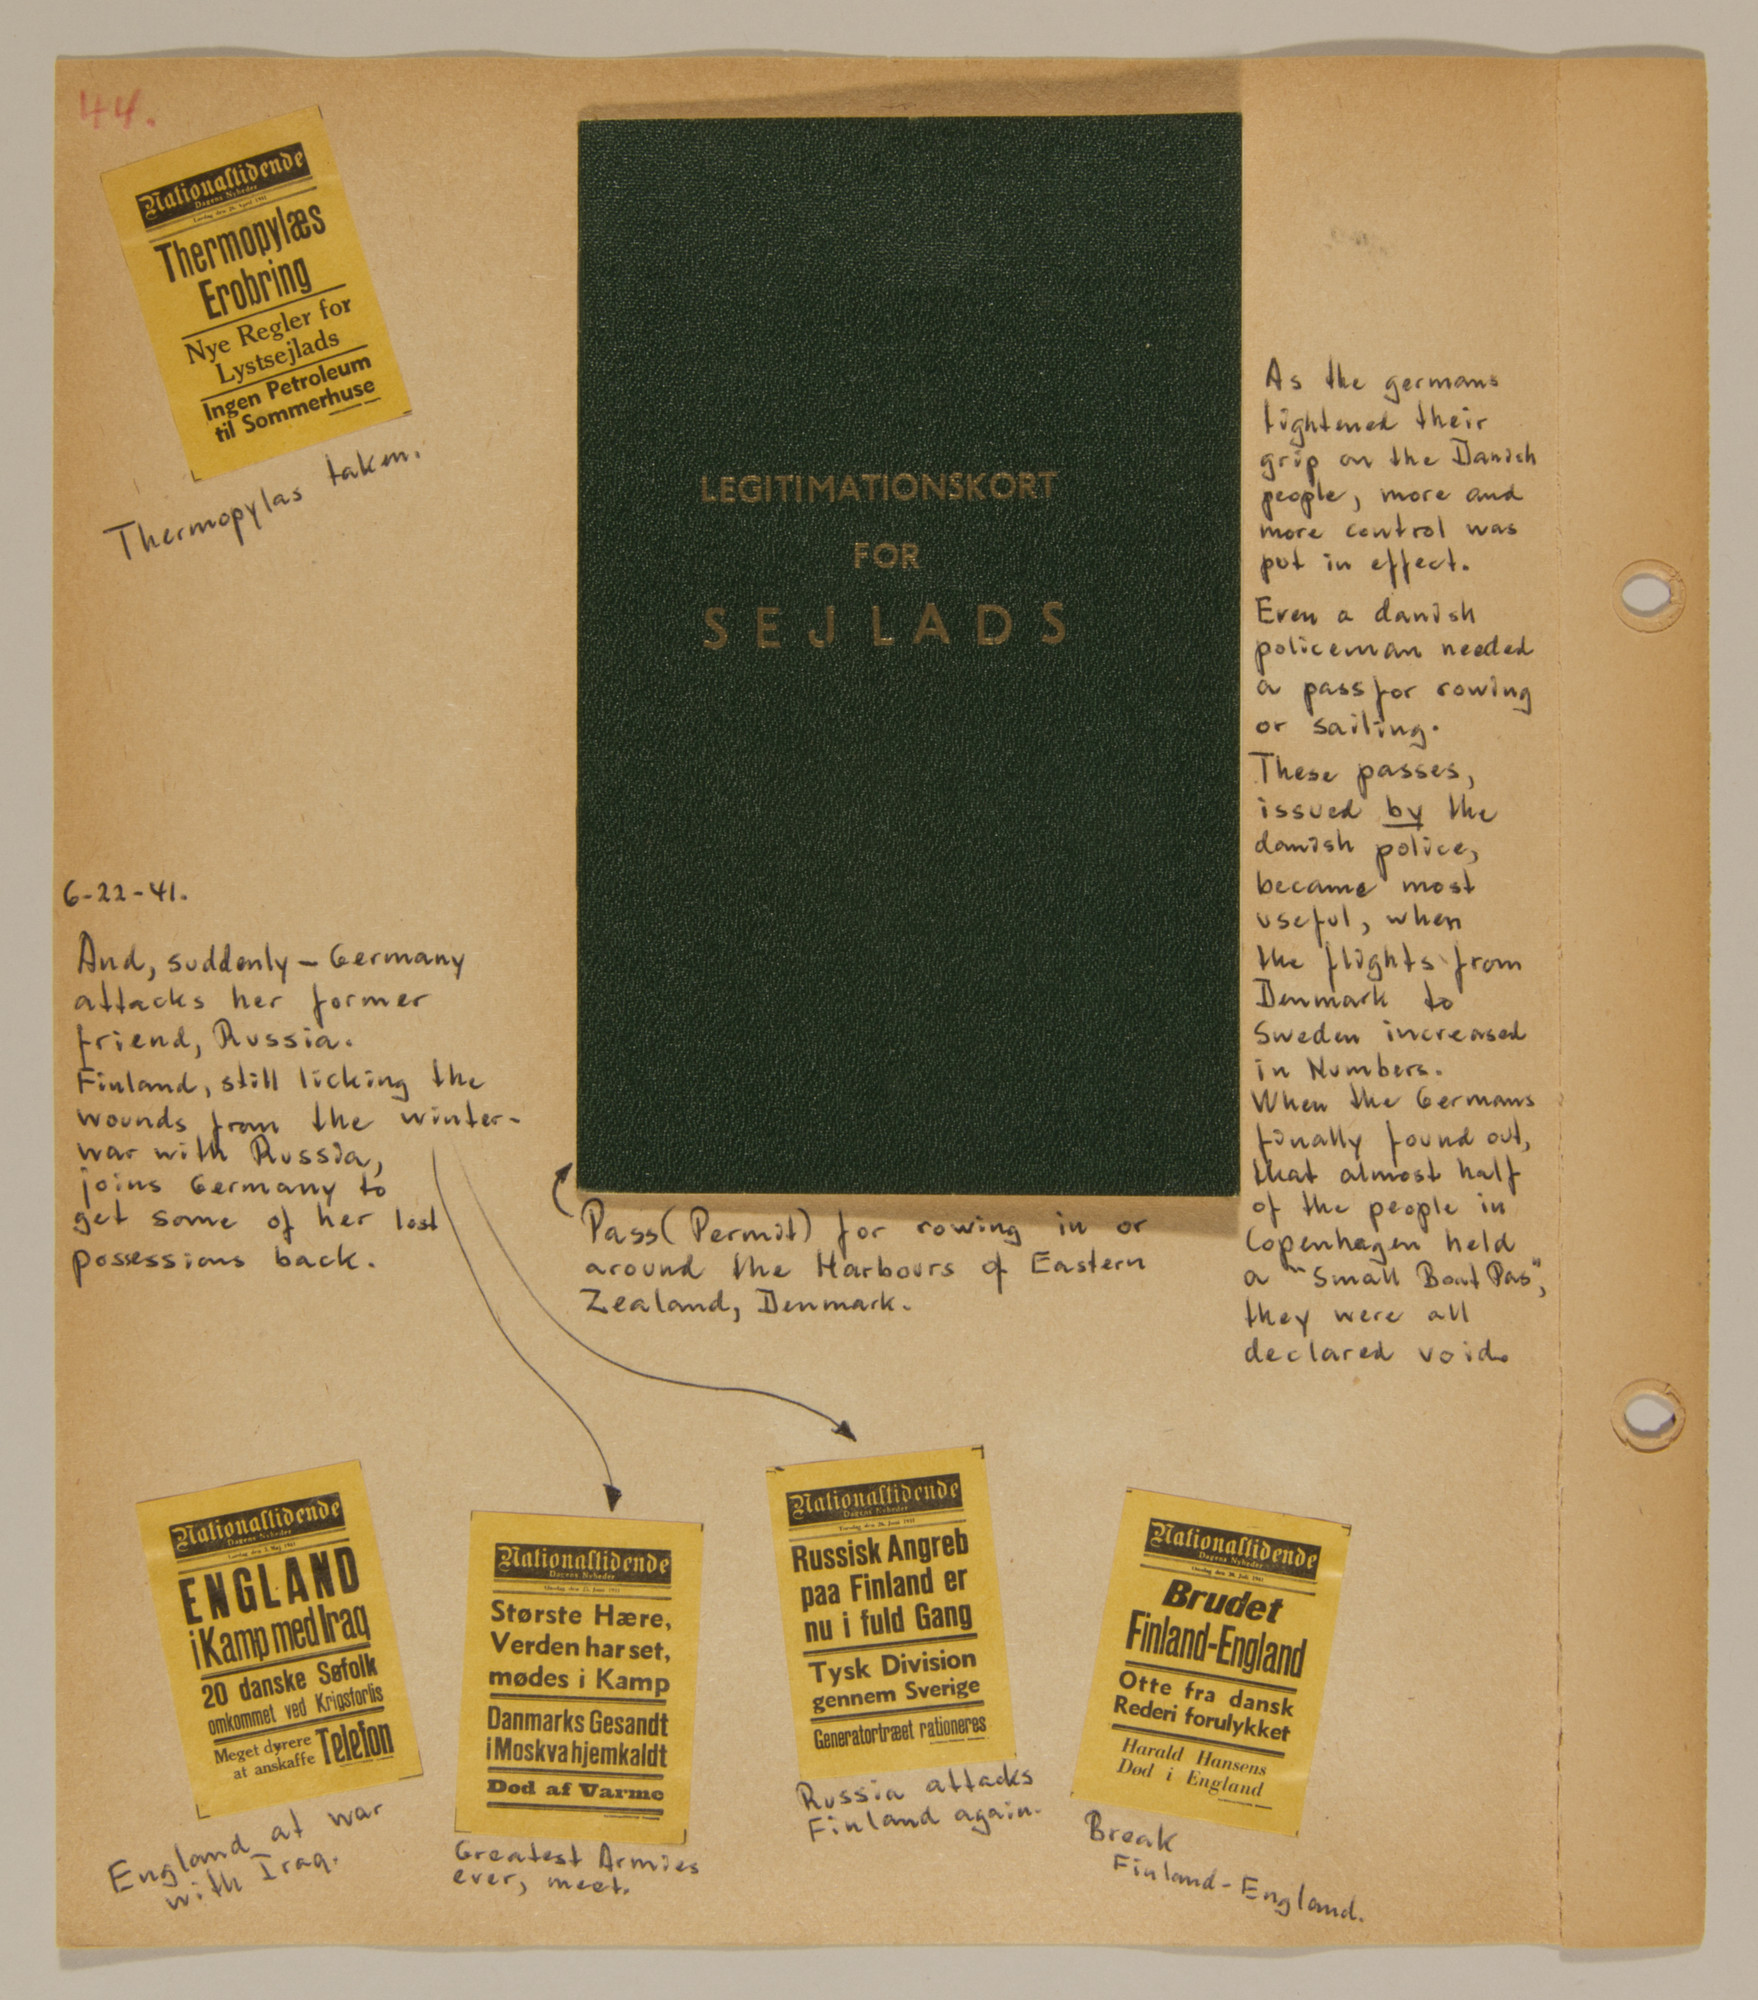 Page from volume one of a set of scrapbooks compiled by Bjorn Sibbern, a Danish policeman and resistance member, documenting the German occupation of Denmark.  The page has newspaper headlines about the invasion of the Soviet Union.